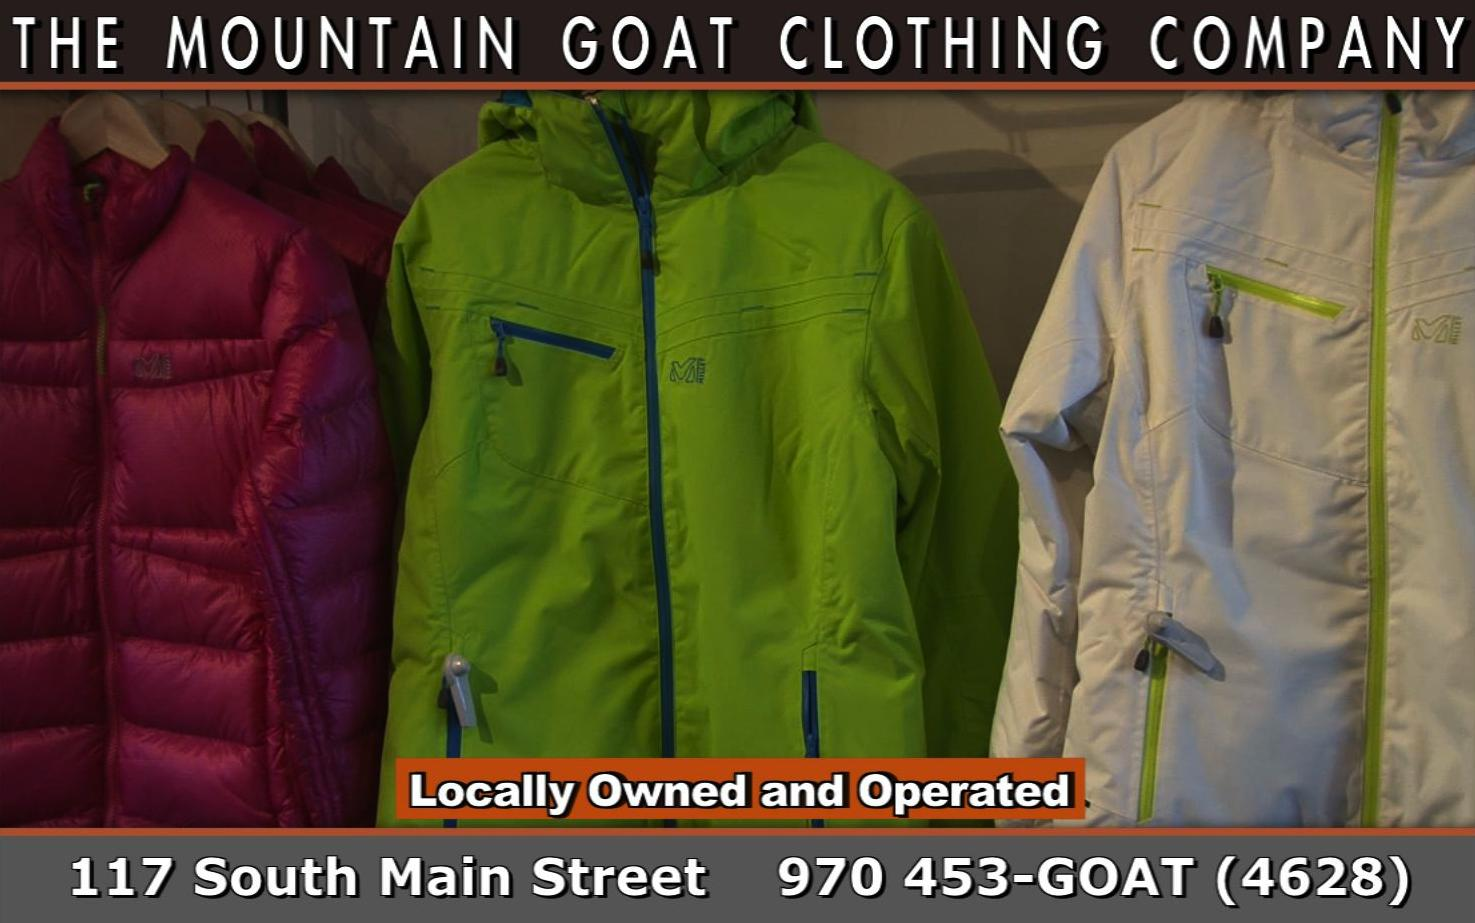 Mountain Goat Clothing Company